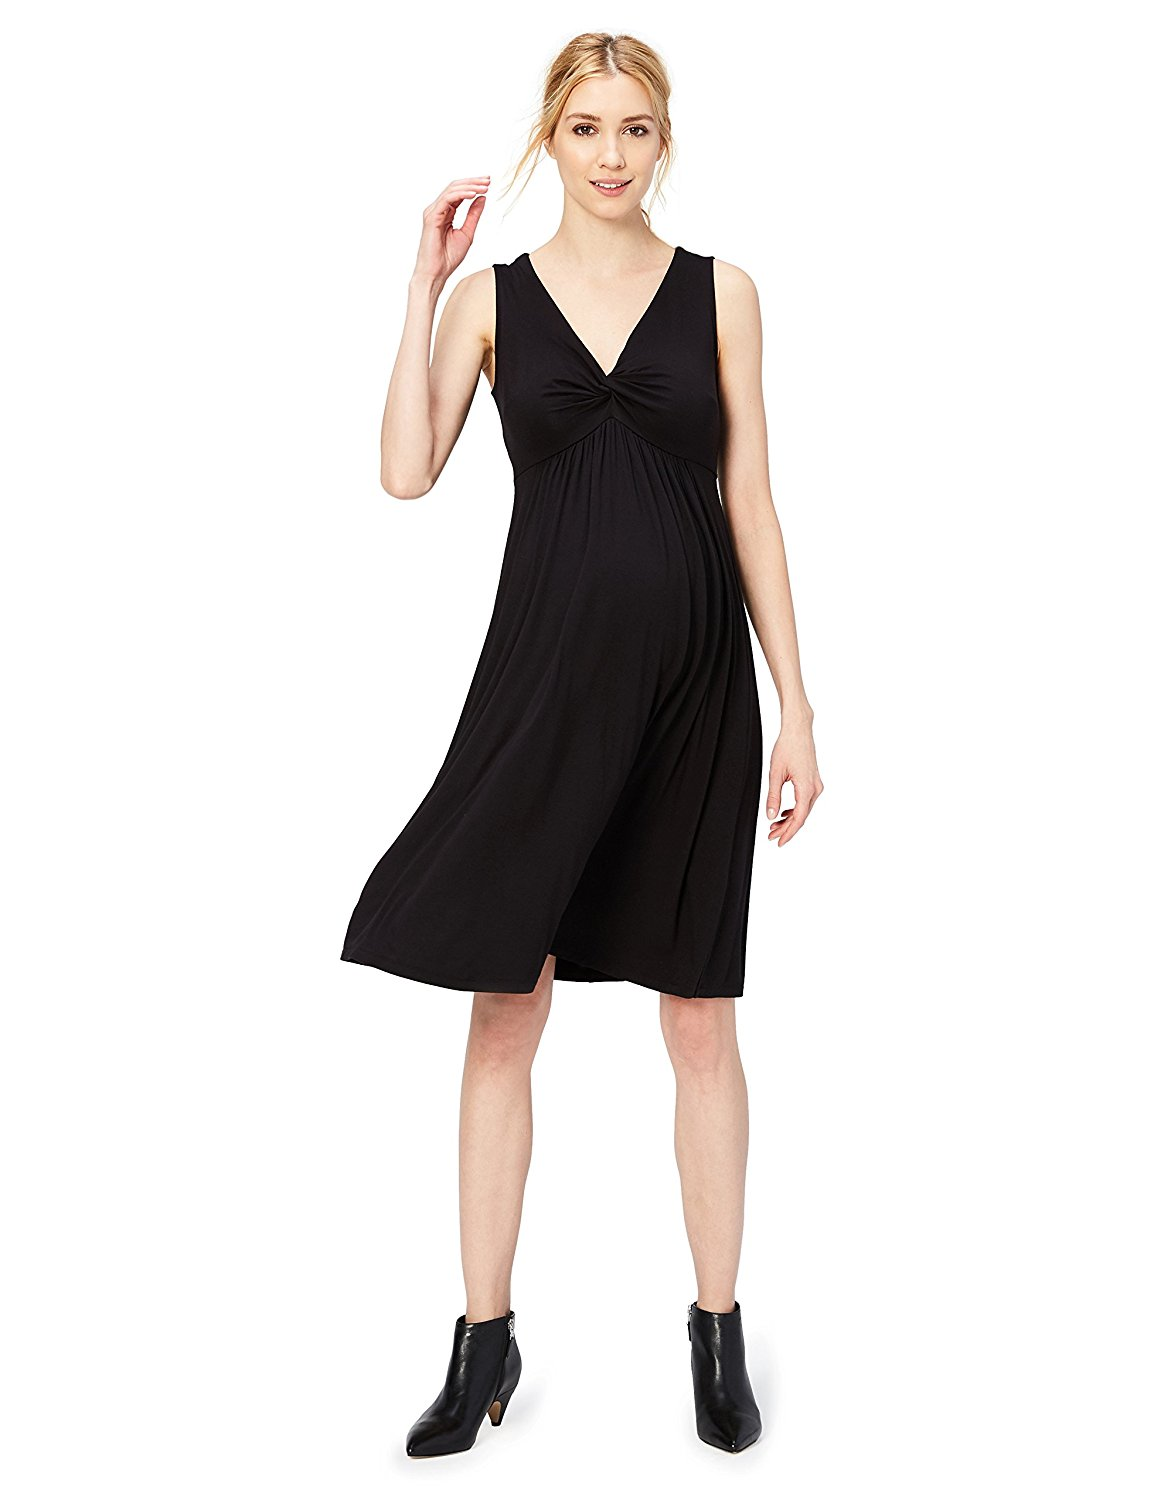 74ba372216ca1 Daily Ritual Maternity Sleeveless Dress - $22.00